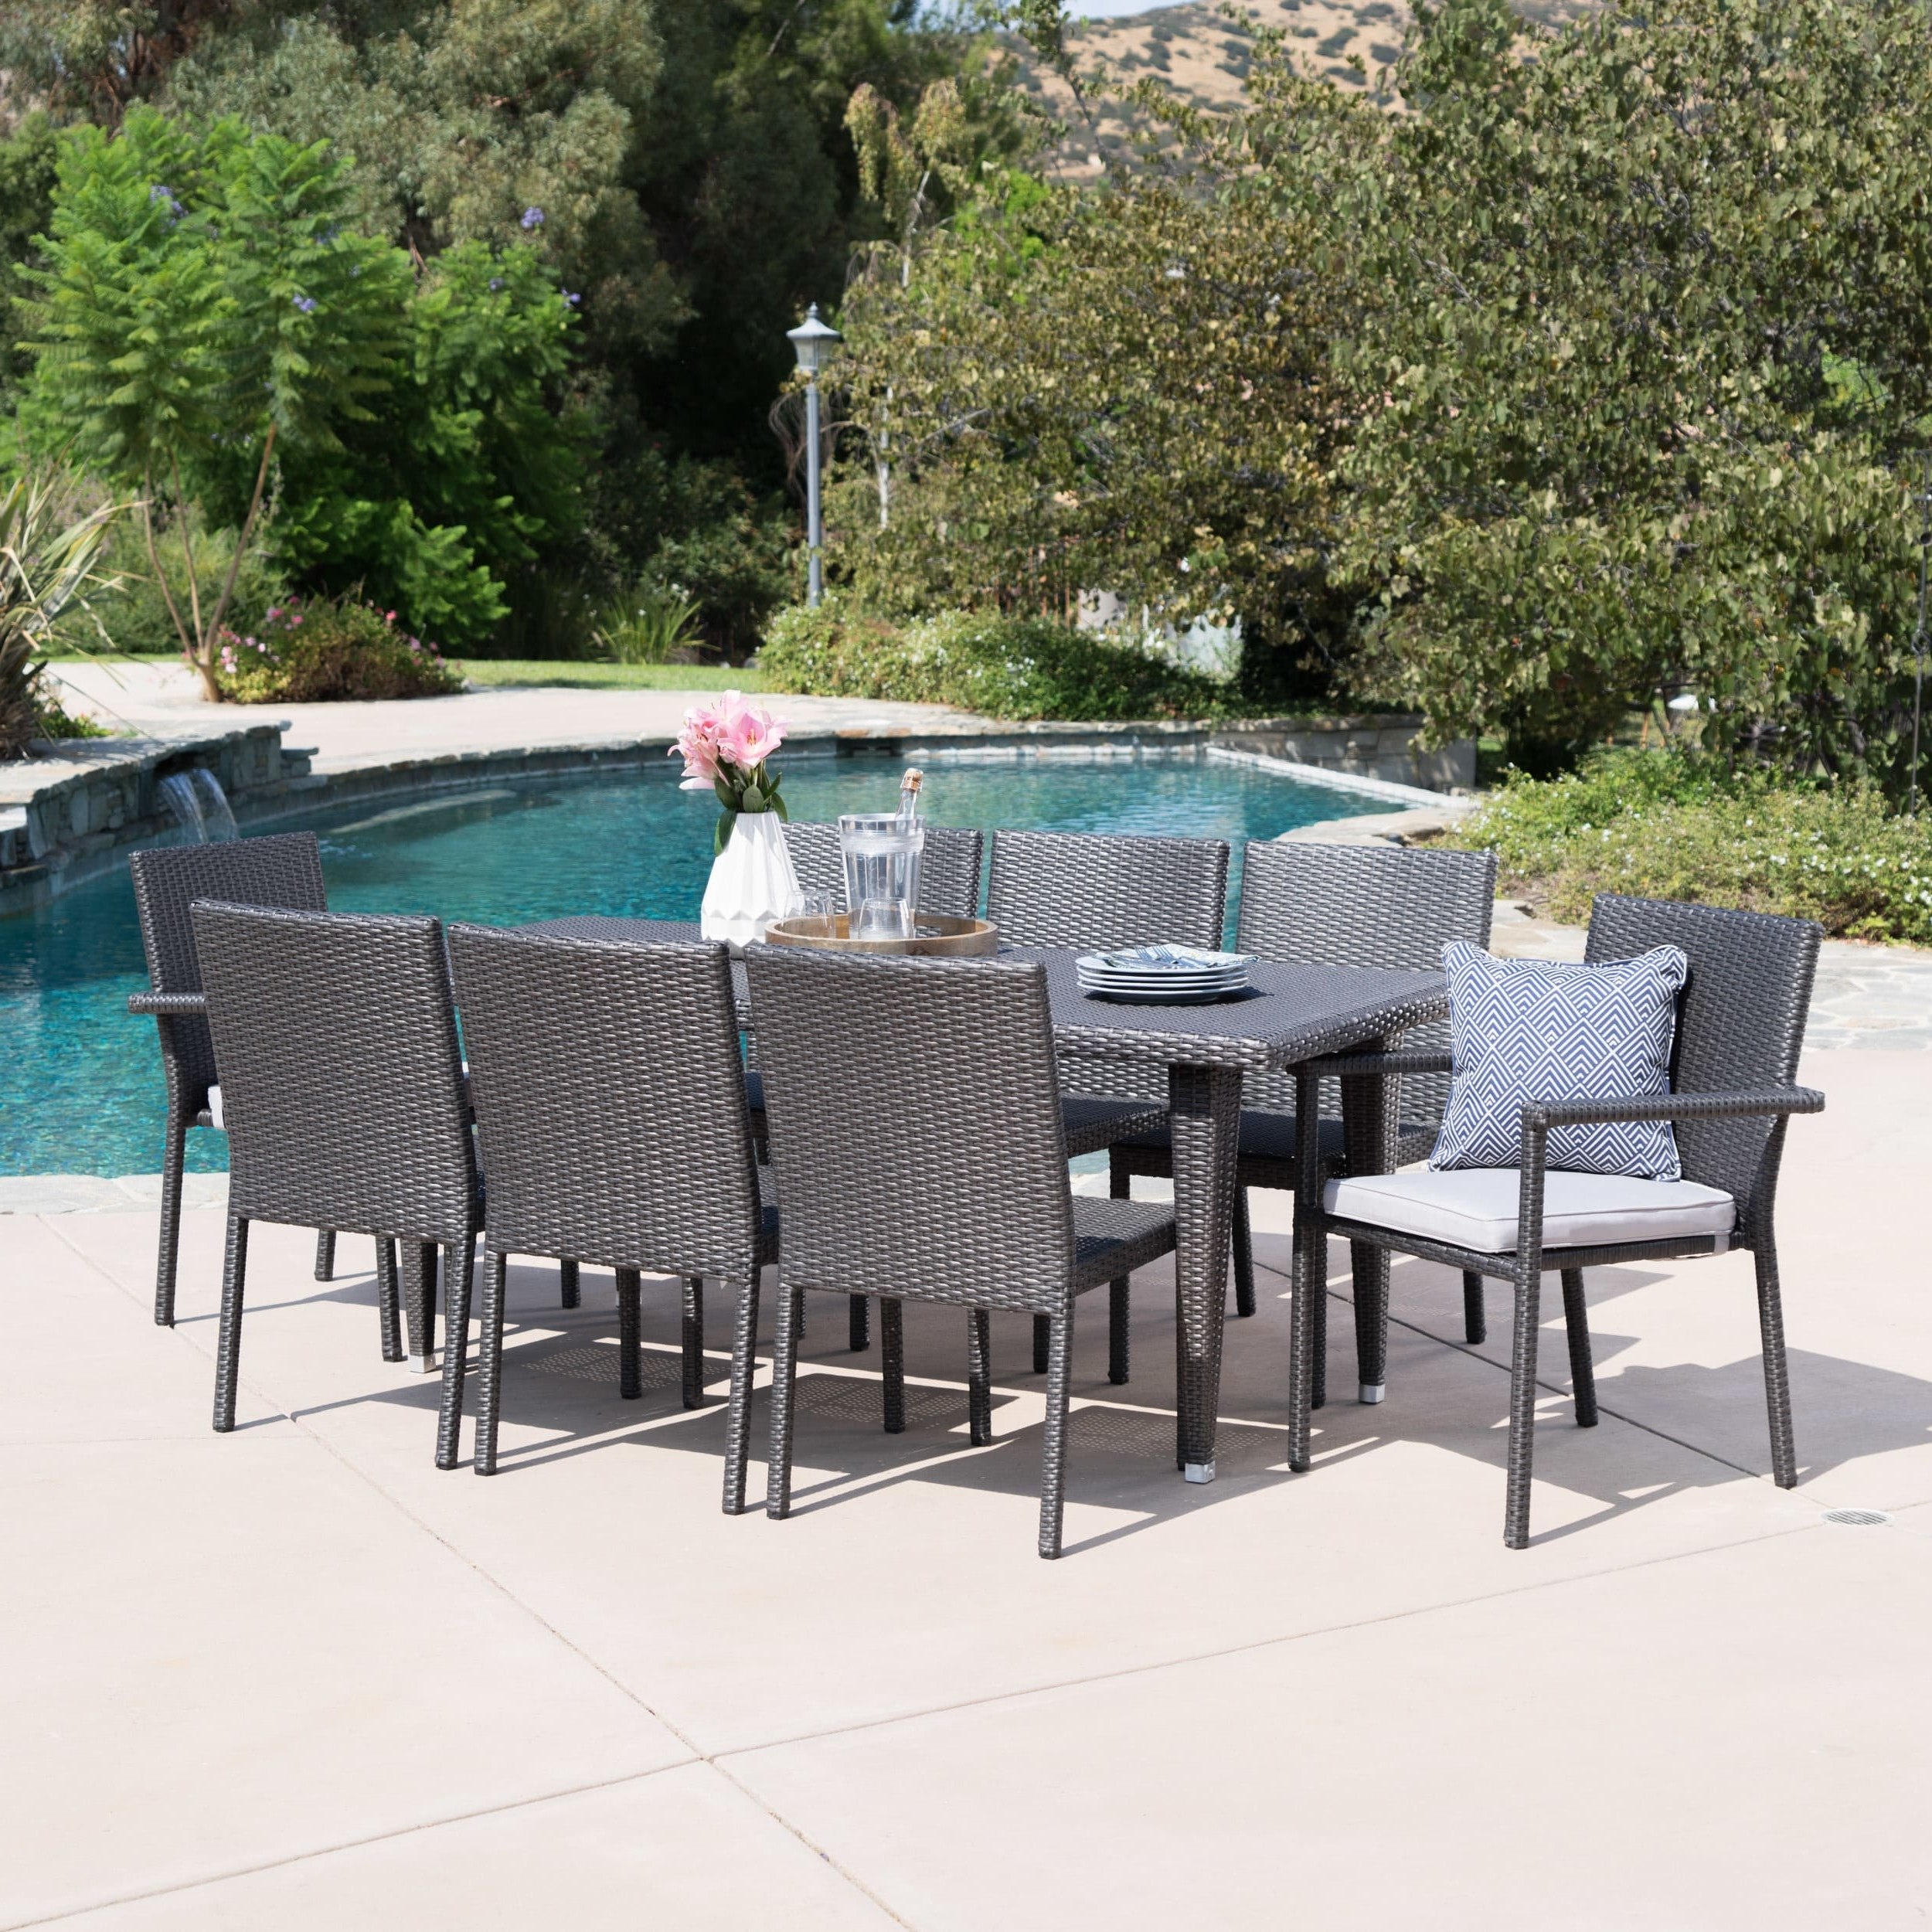 Grady Round Dining Tables In Most Current Christopher Knight Home Grady Outdoor 9 Piece Rectangular Wicker (View 10 of 25)